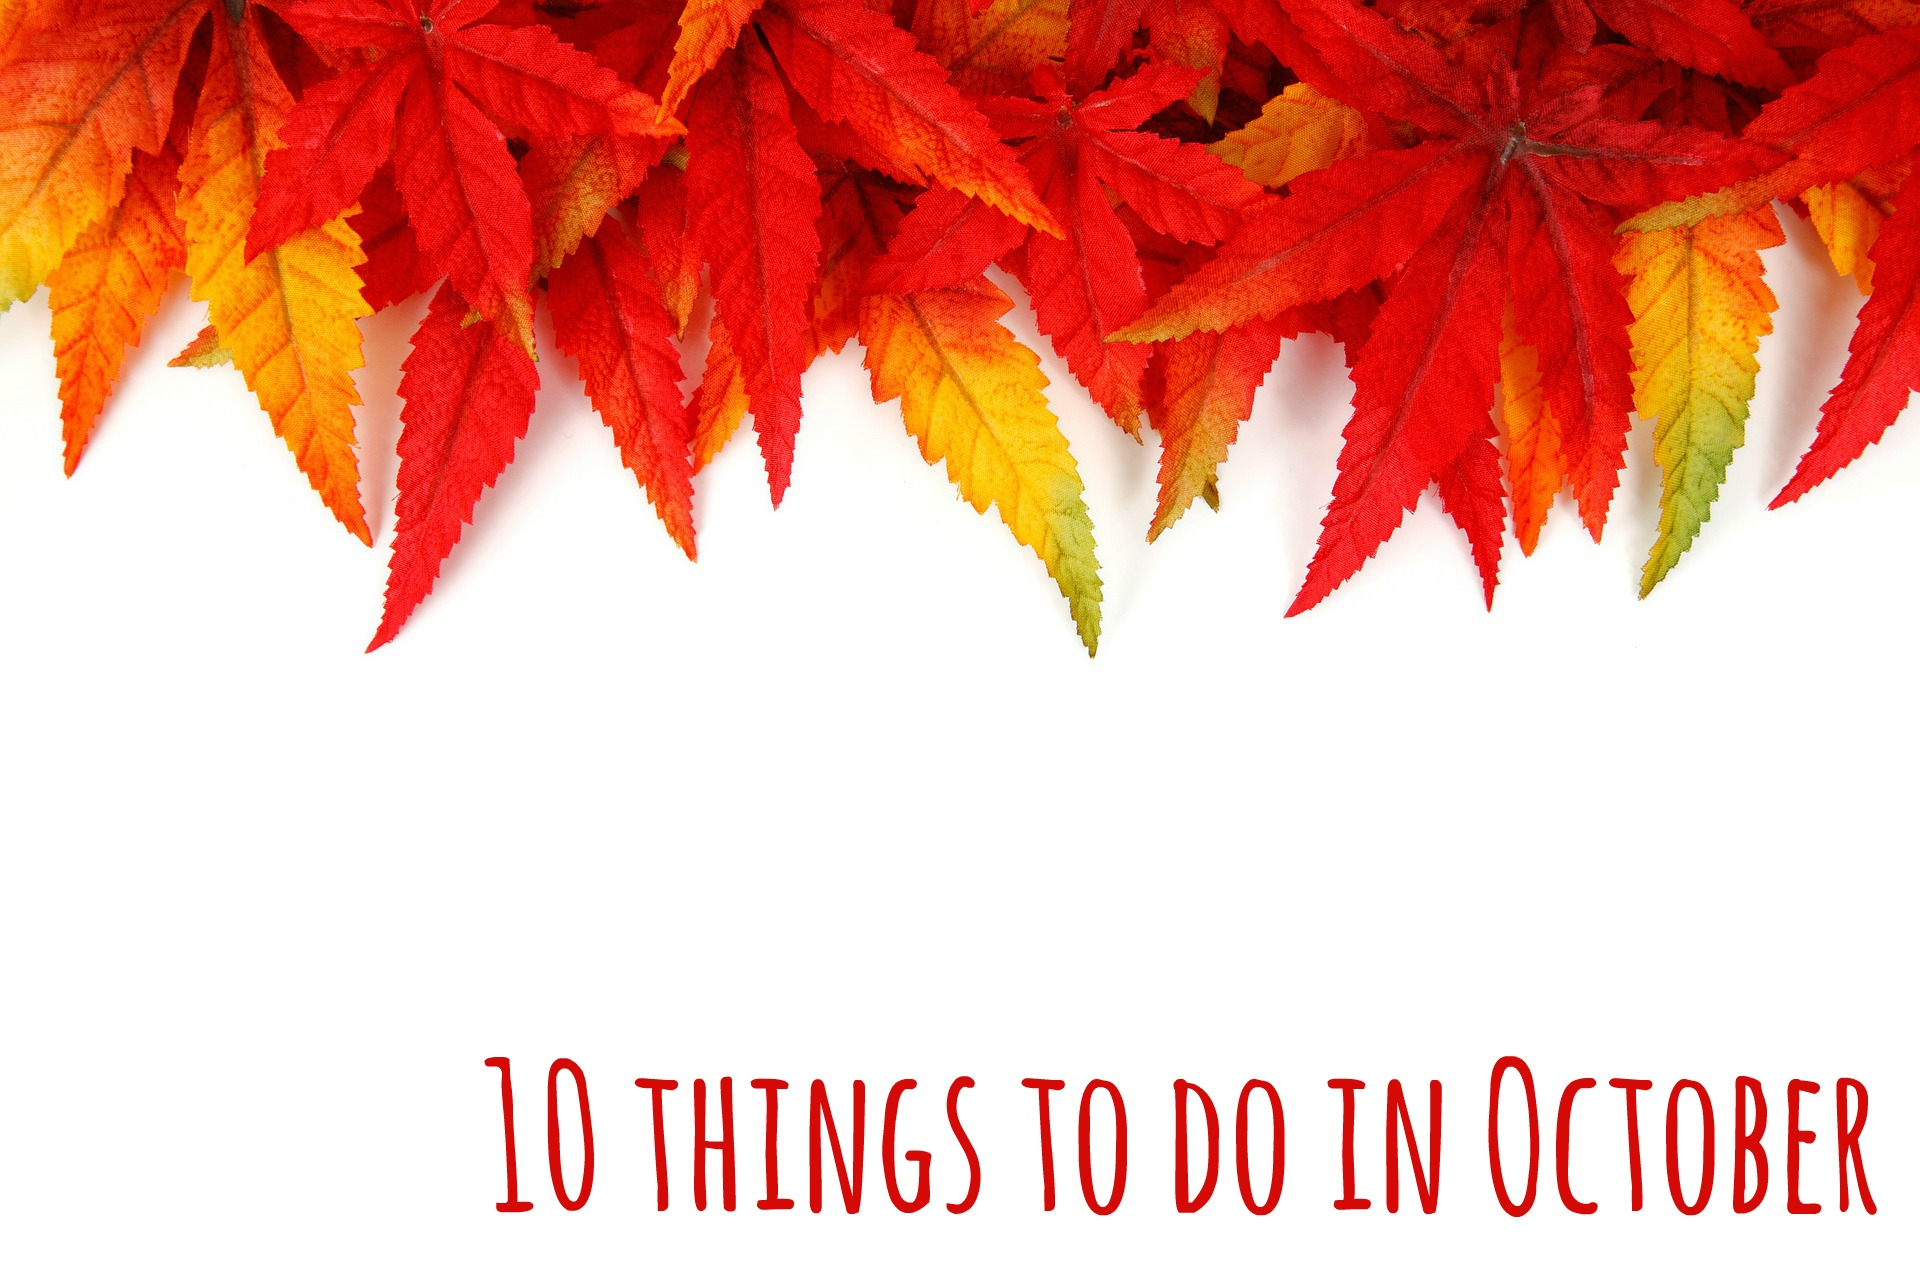 10 things to do in October - a list of the best things for families and small children